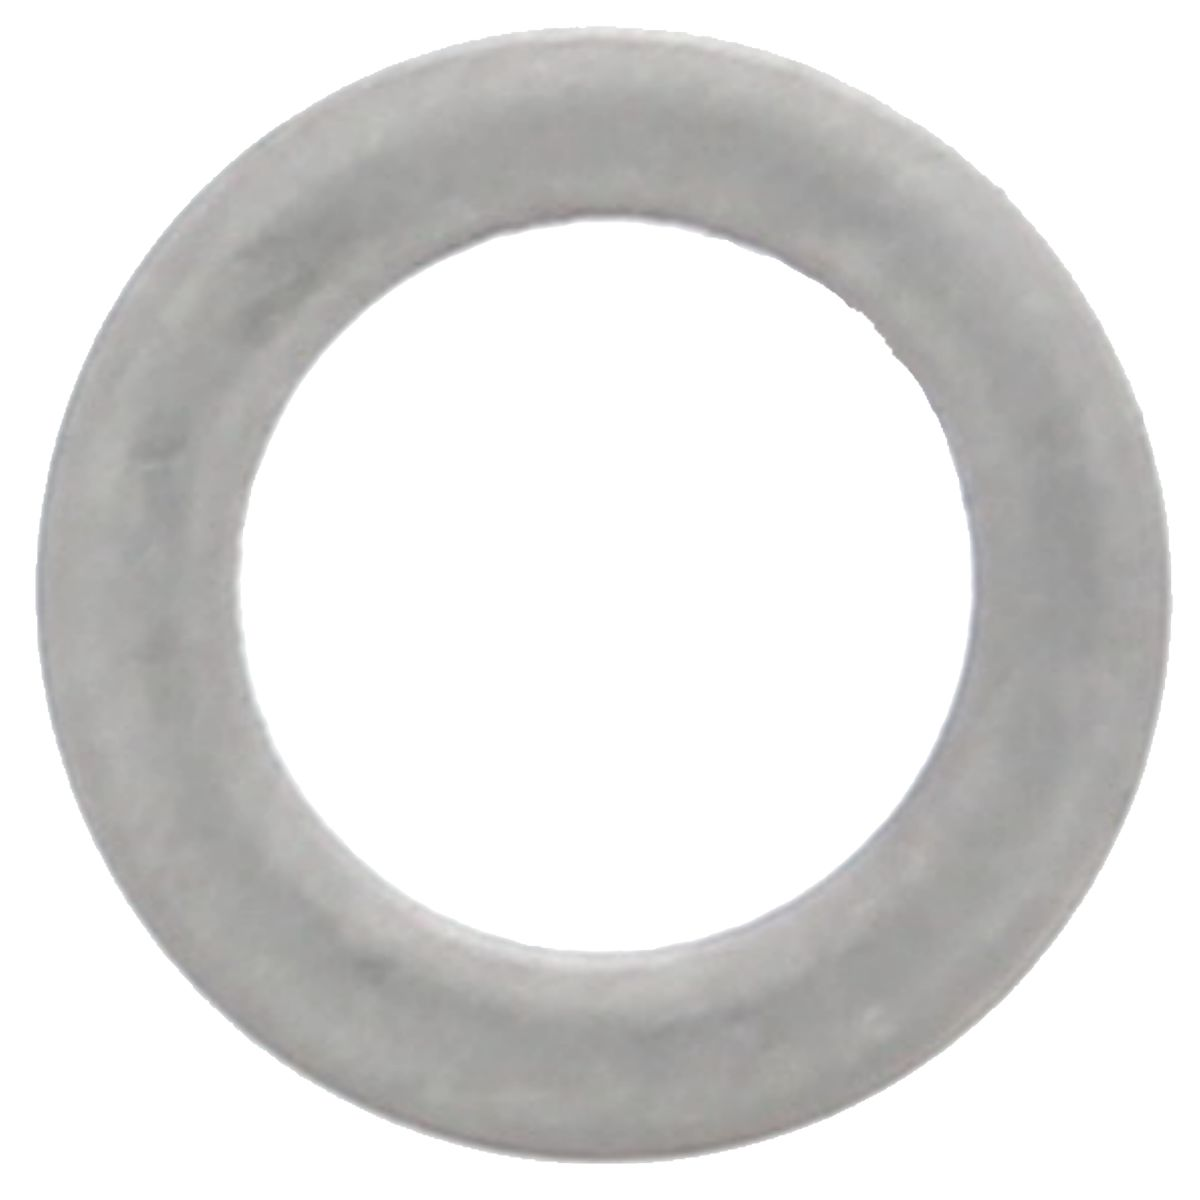 """.203"""" x .437"""" x 1/16"""" Flat Washers AN960 — 900 Series 18-8 Stainless Steel, 100/PKG"""